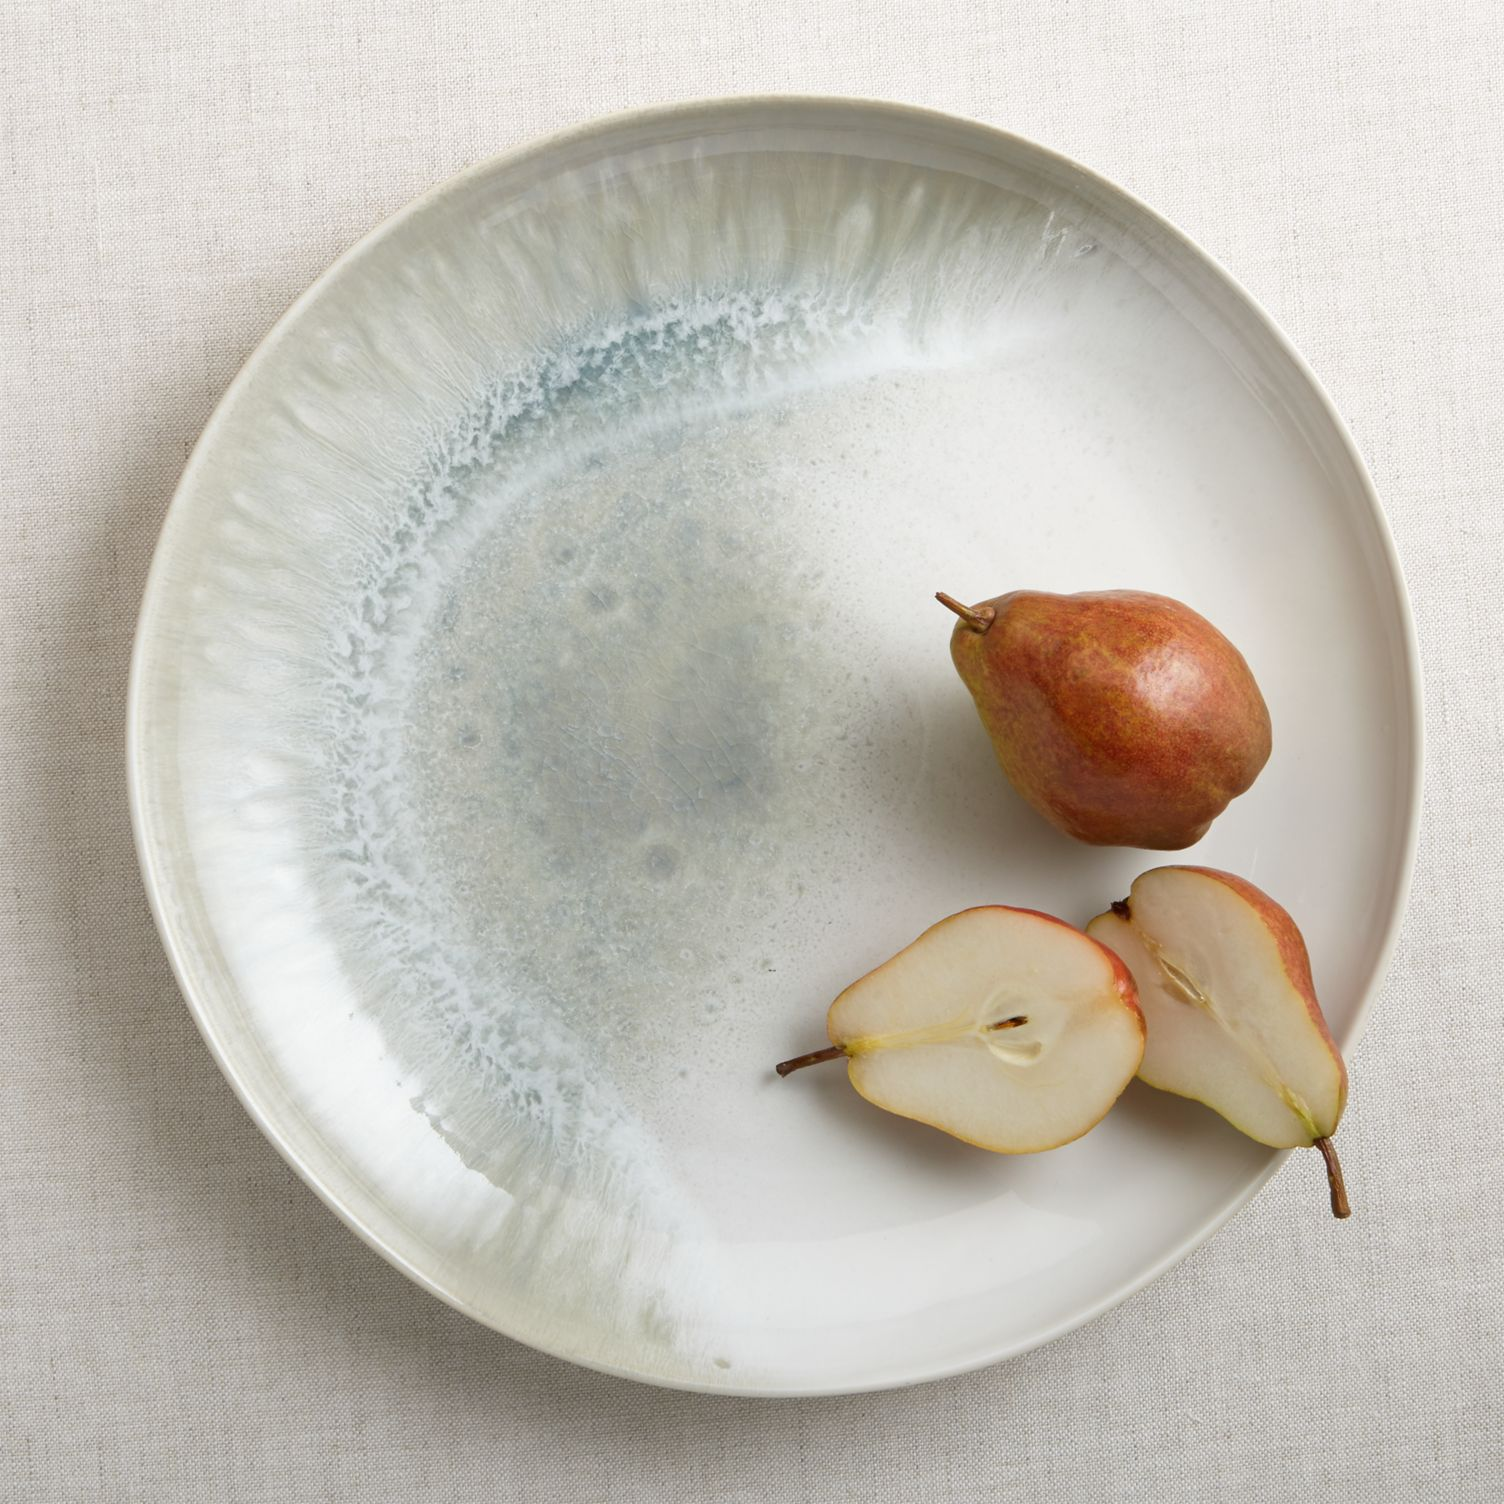 Stoneware platter from Crate & Barrel